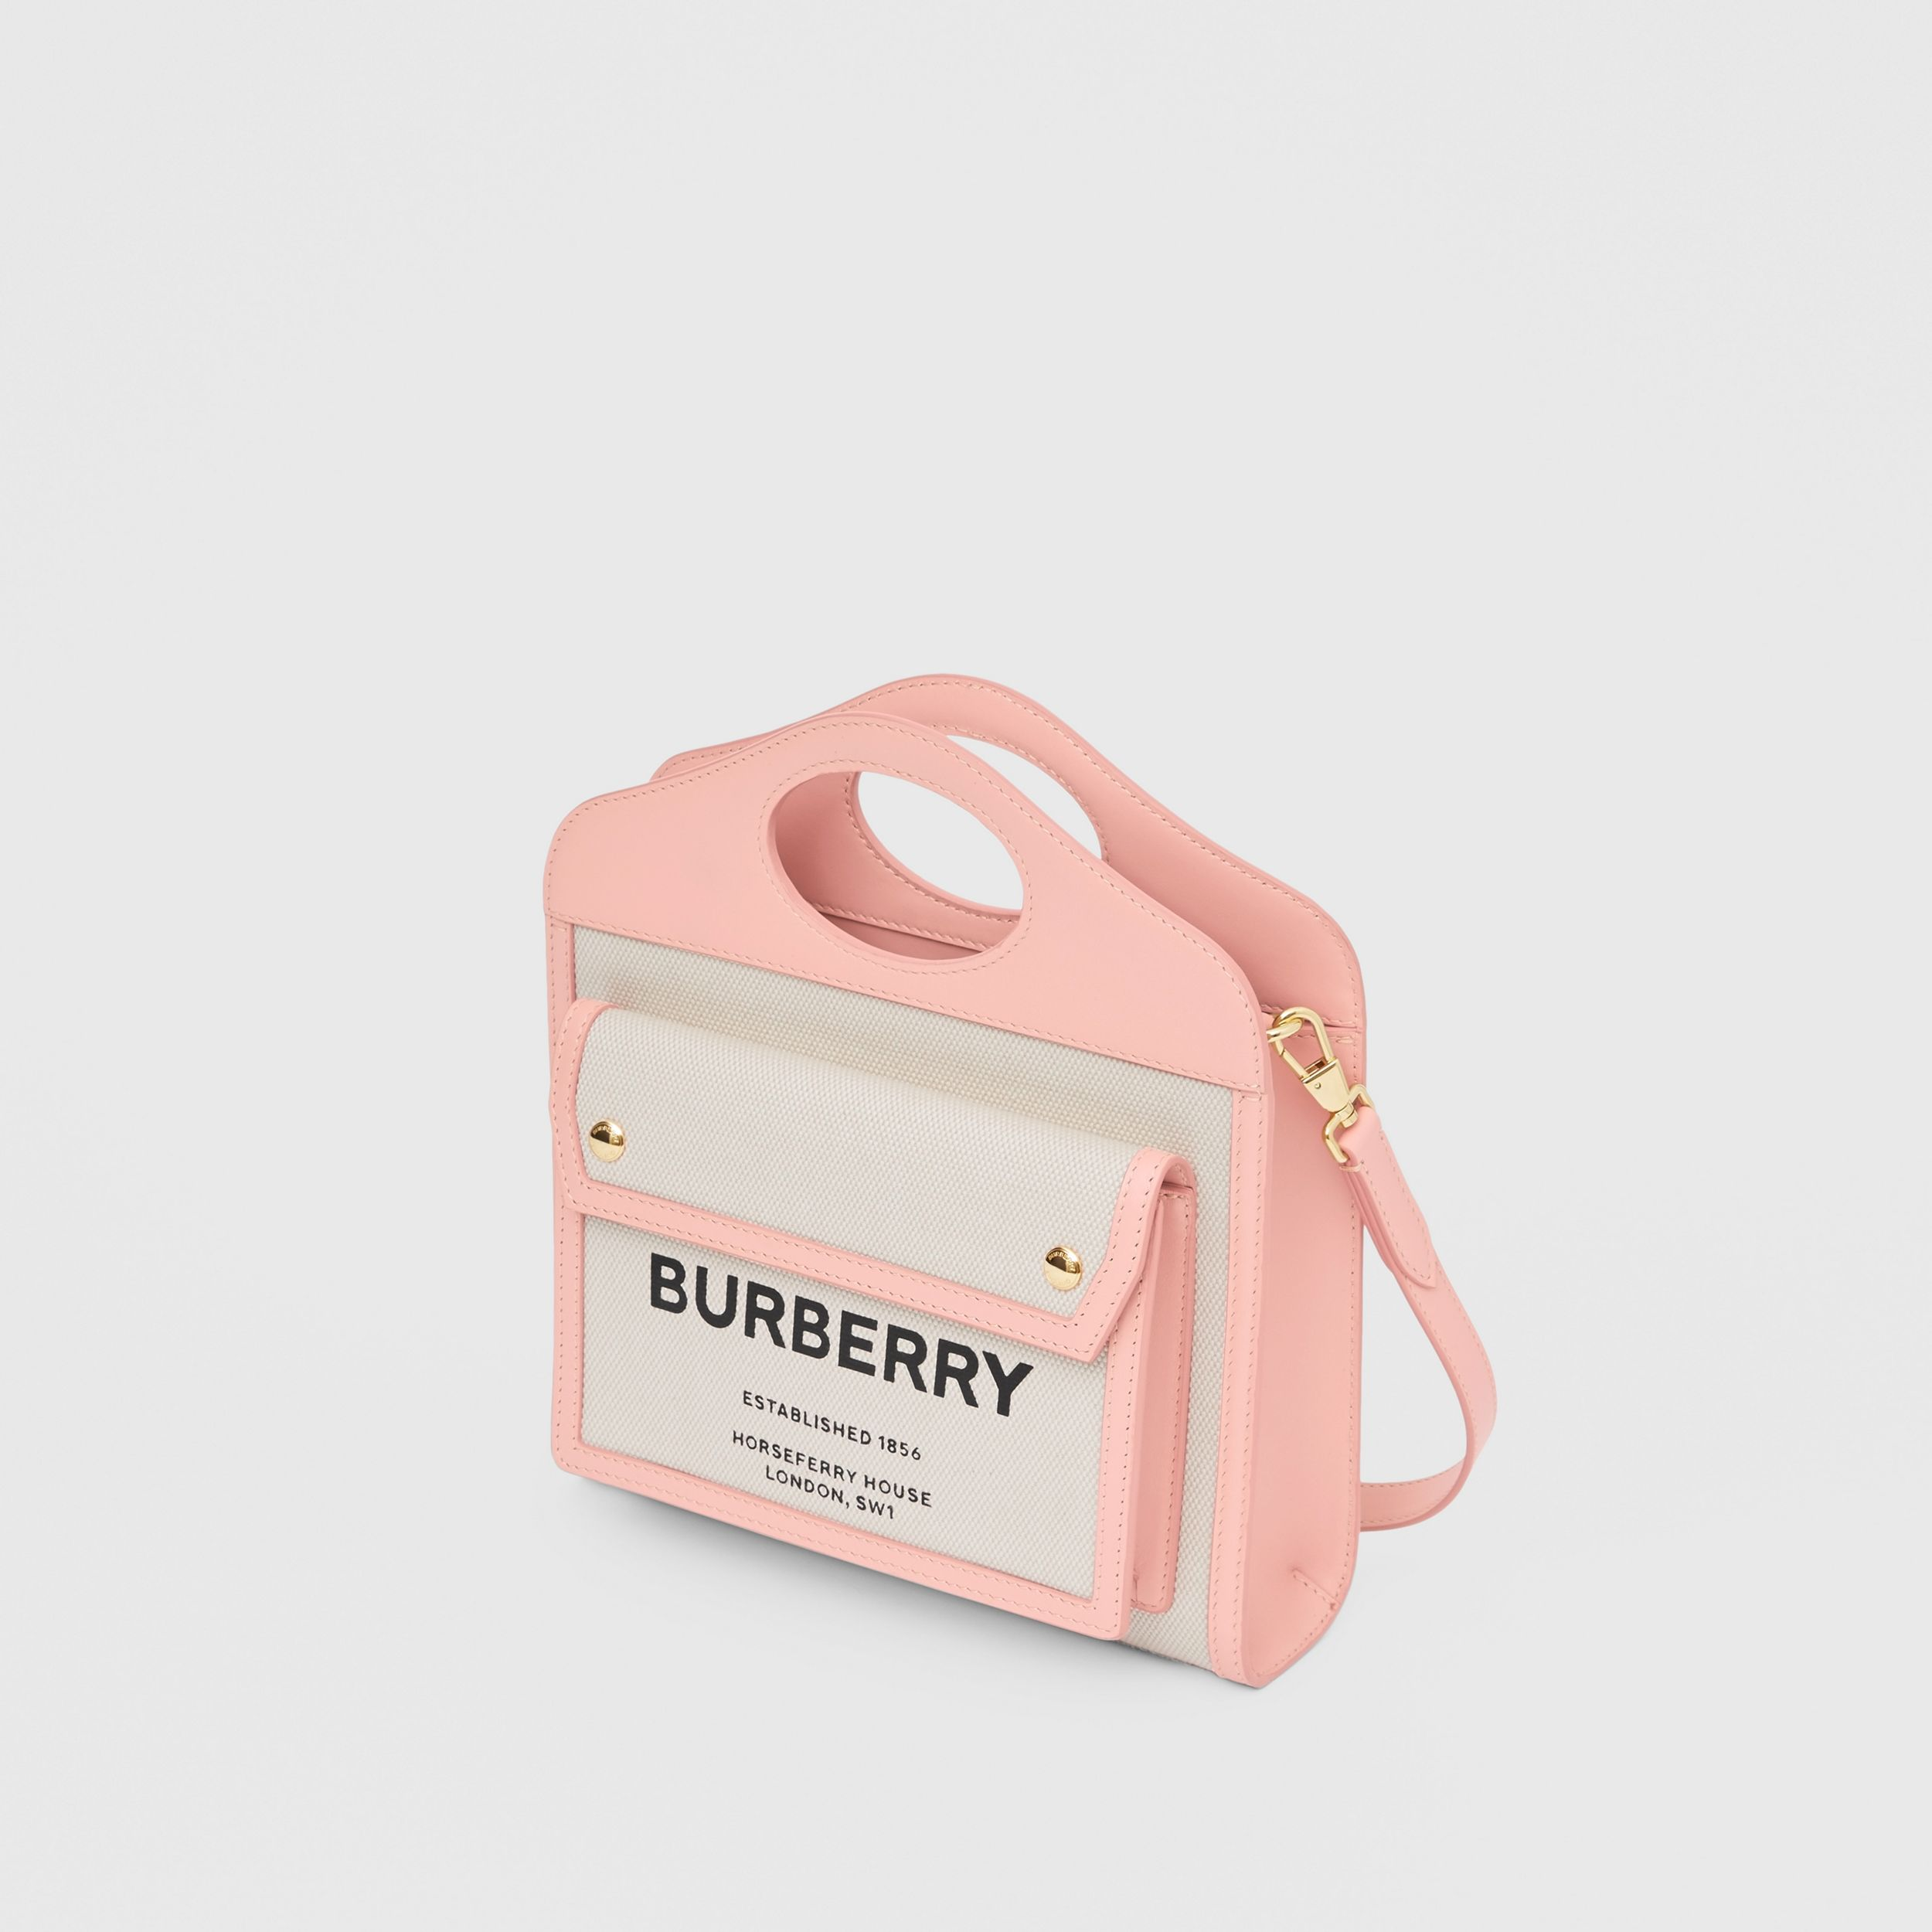 Mini Two-tone Canvas and Leather Pocket Bag in Blush Pink - Women | Burberry - 4